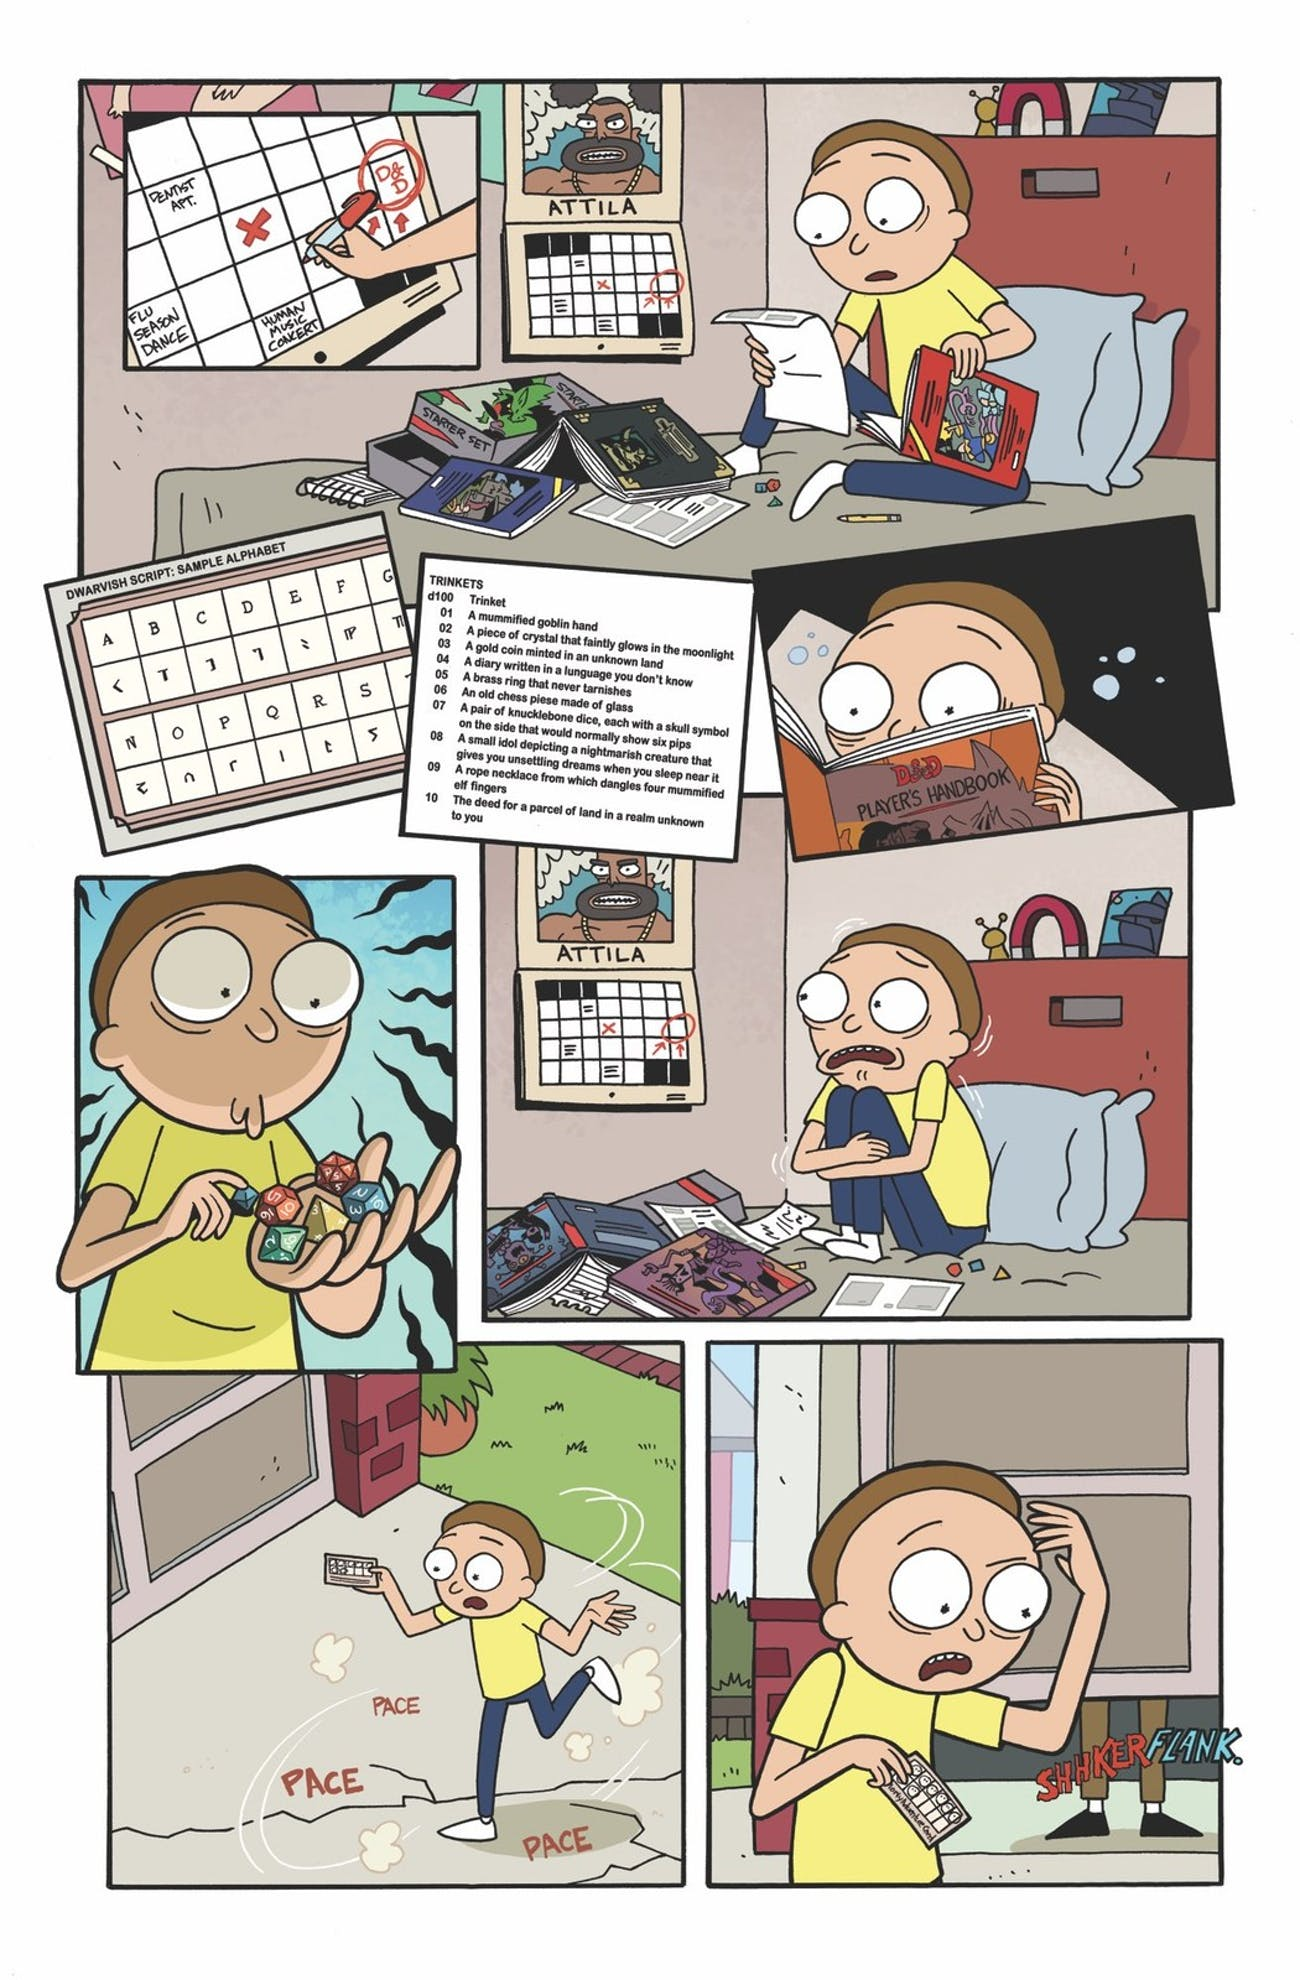 Rick and Morty' Easter Egg Confirms When the 'D&D' Comic